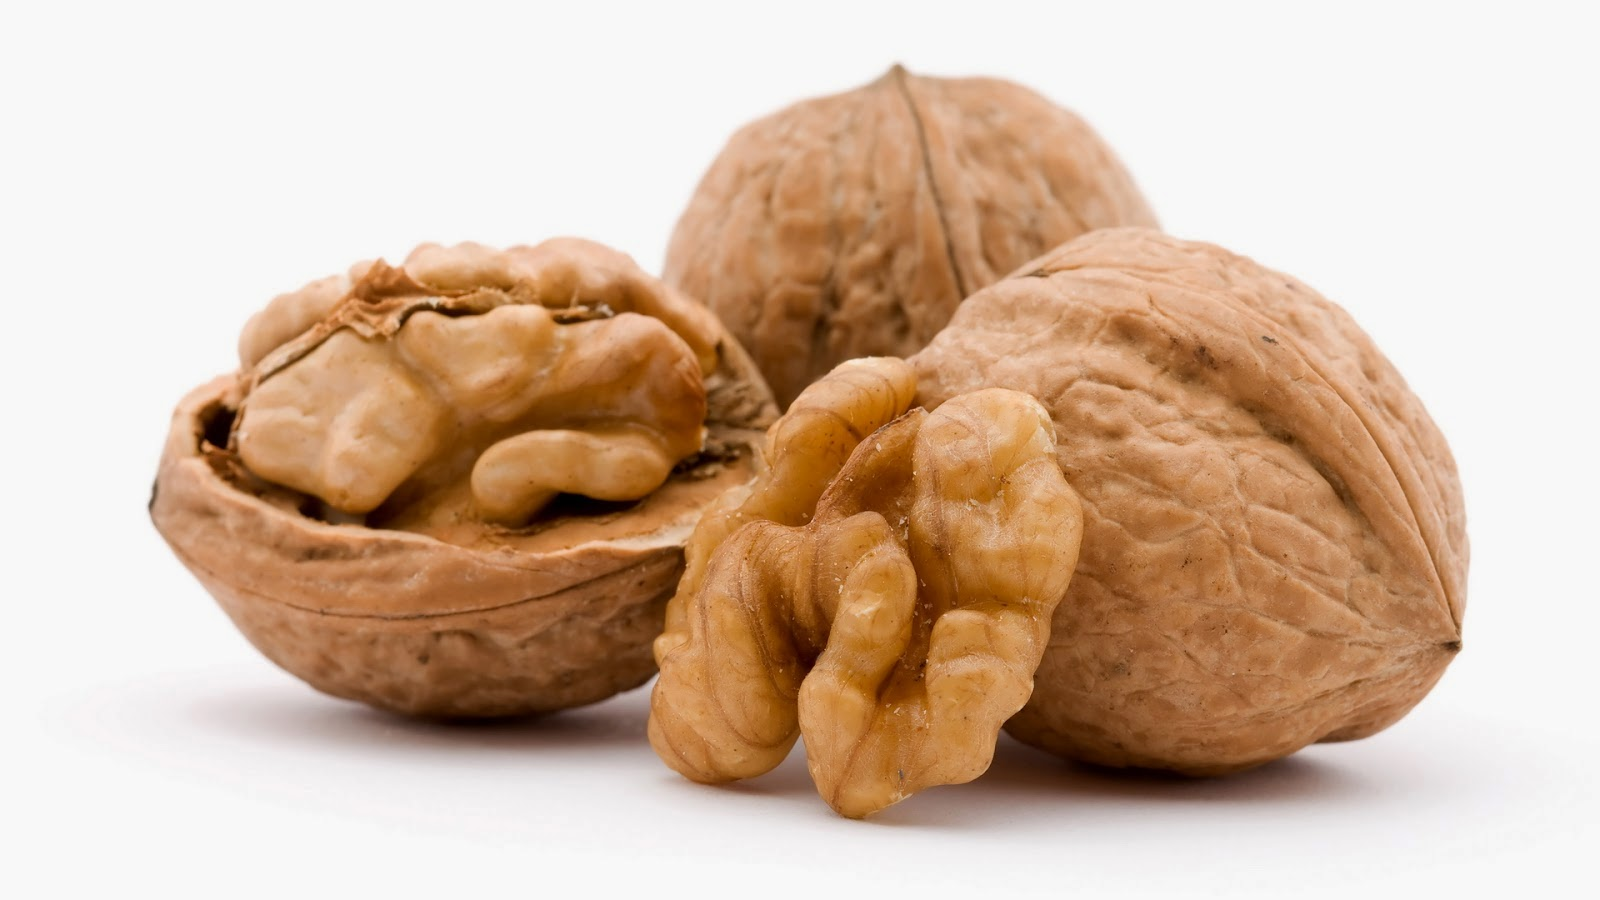 Beneficios de consumir Nueces